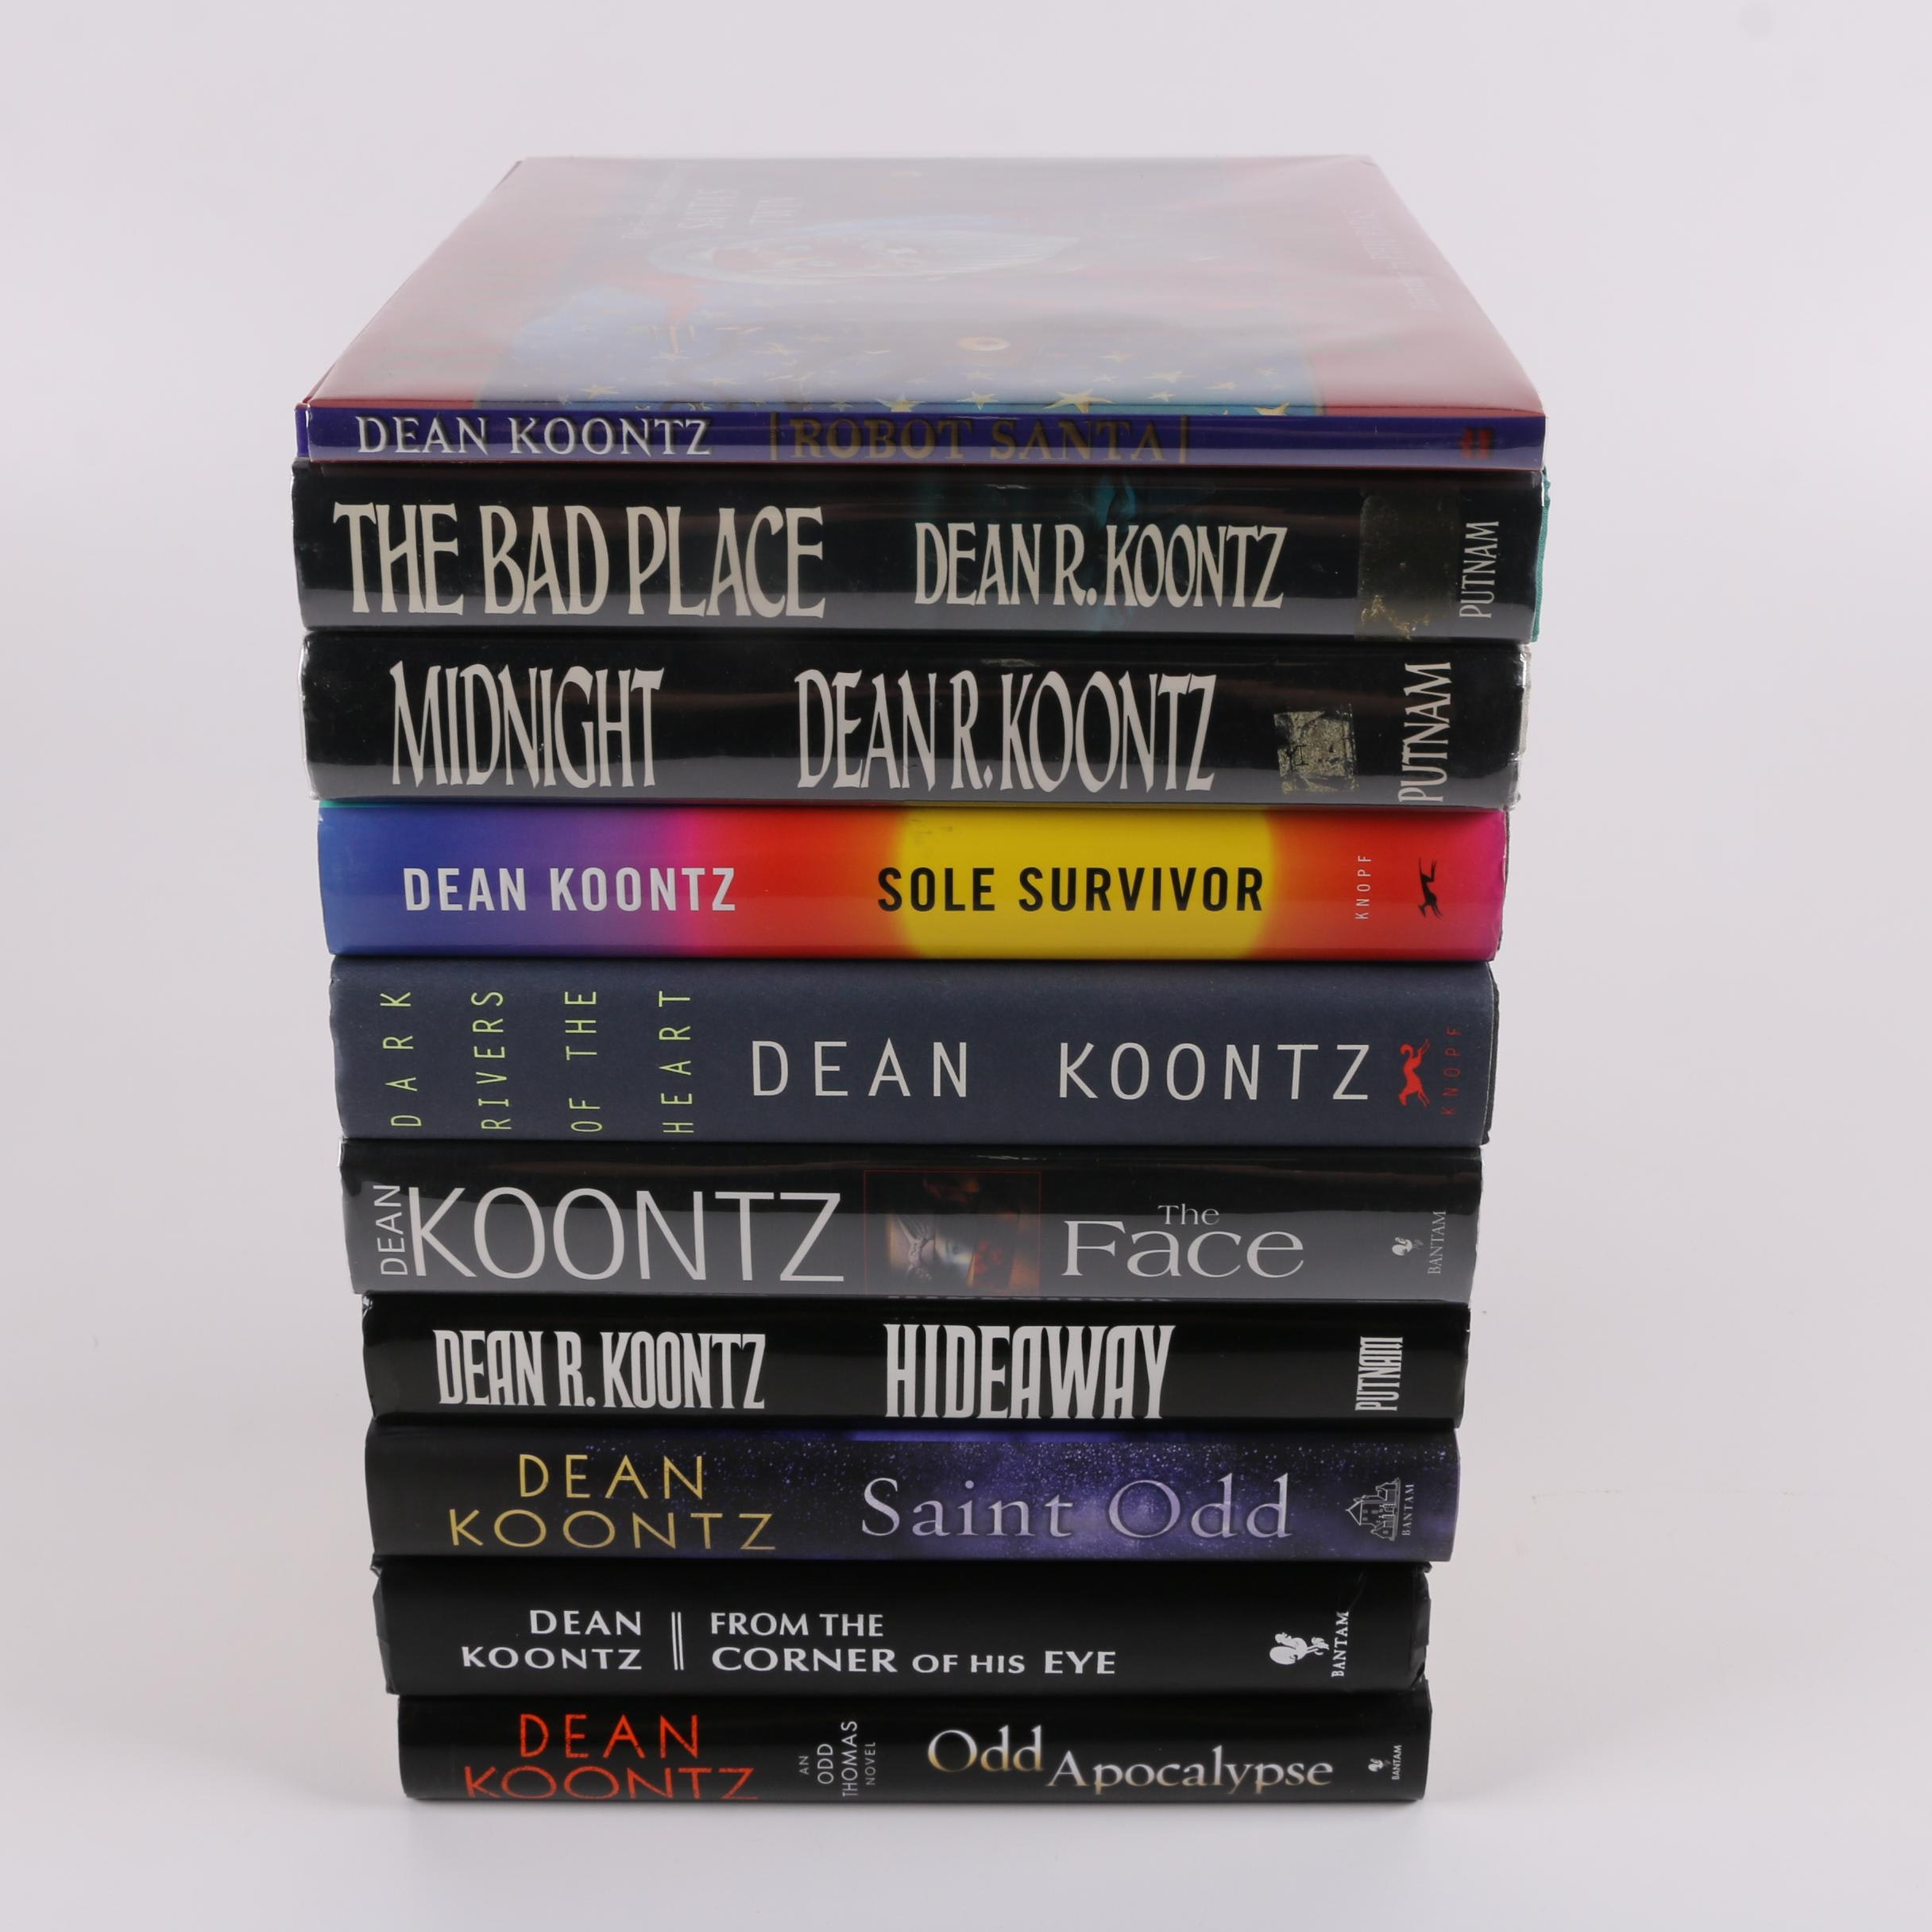 Signed First Edition Dean Koontz Novels and Picture Book